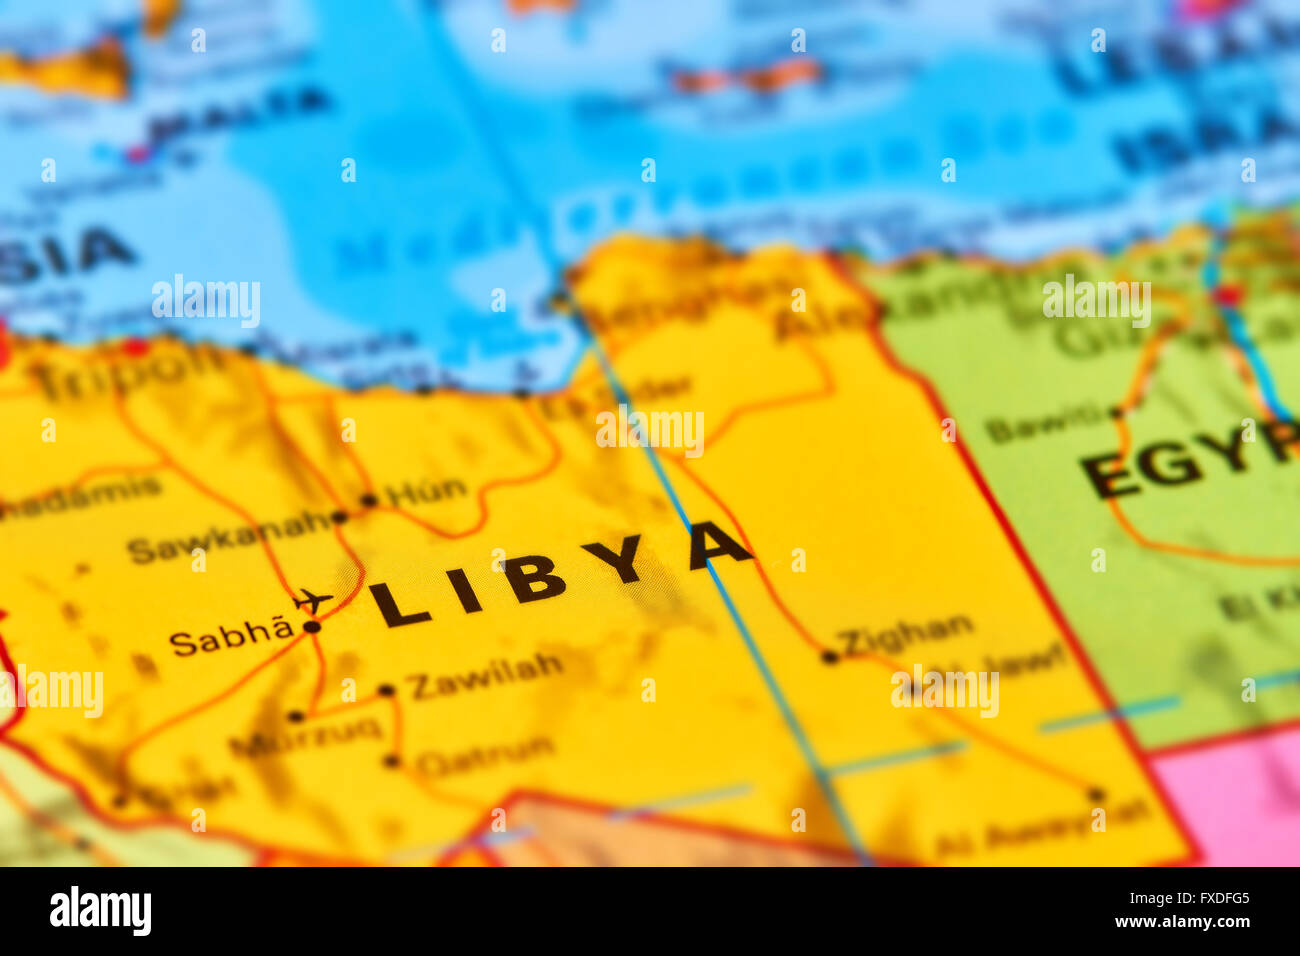 Libya Country In Africa On The World Map Stock Photo 102330485 Alamy